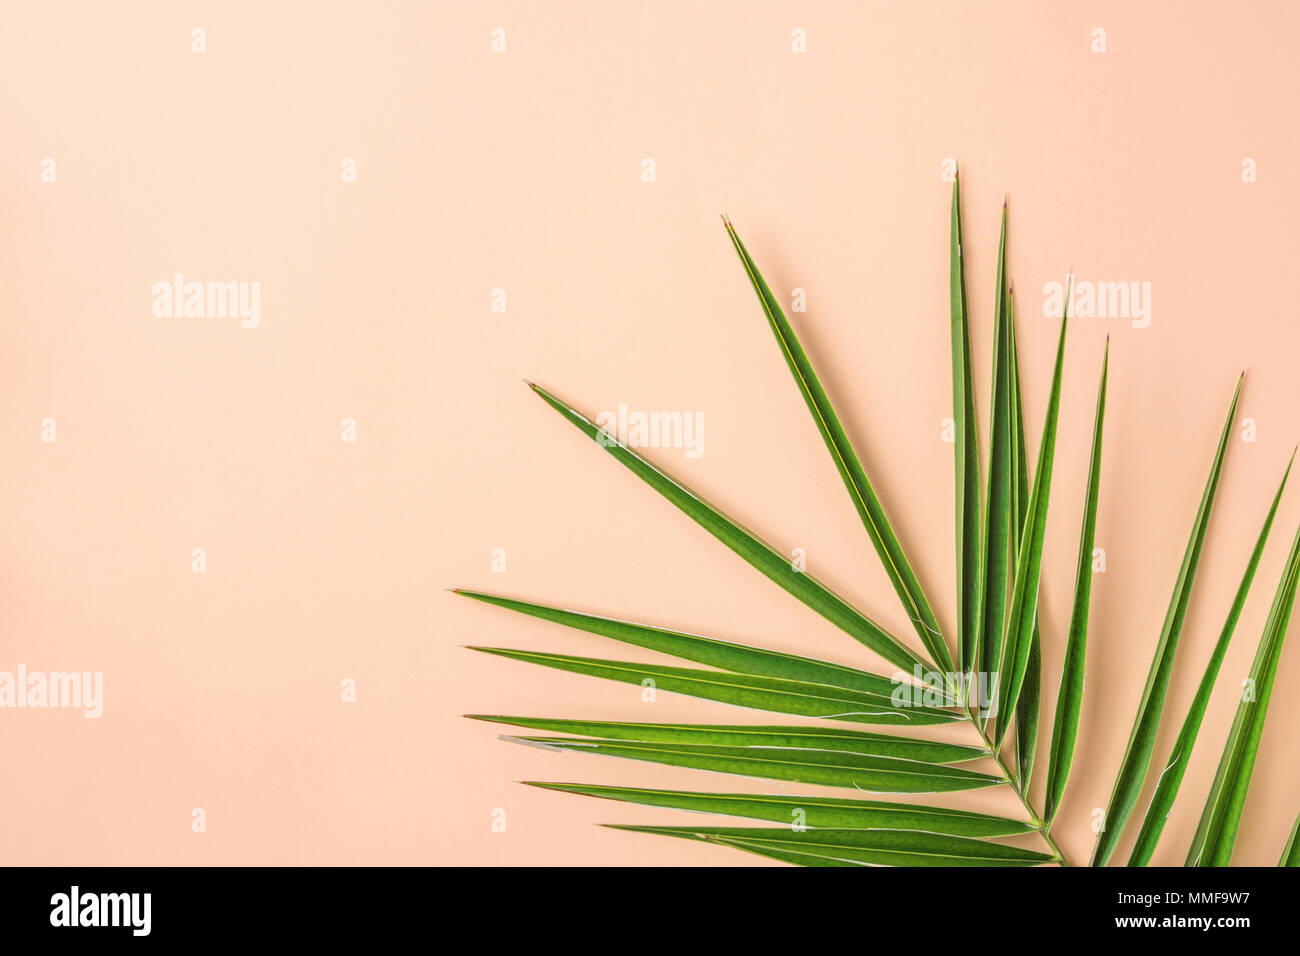 Spiky Feathery Green Palm Leaf on Pink Peachy Wall Background. Room Plant Interior Decoration Organic Cosmetics Spa Wellness Fashion Concept. Pastel C - Stock Image